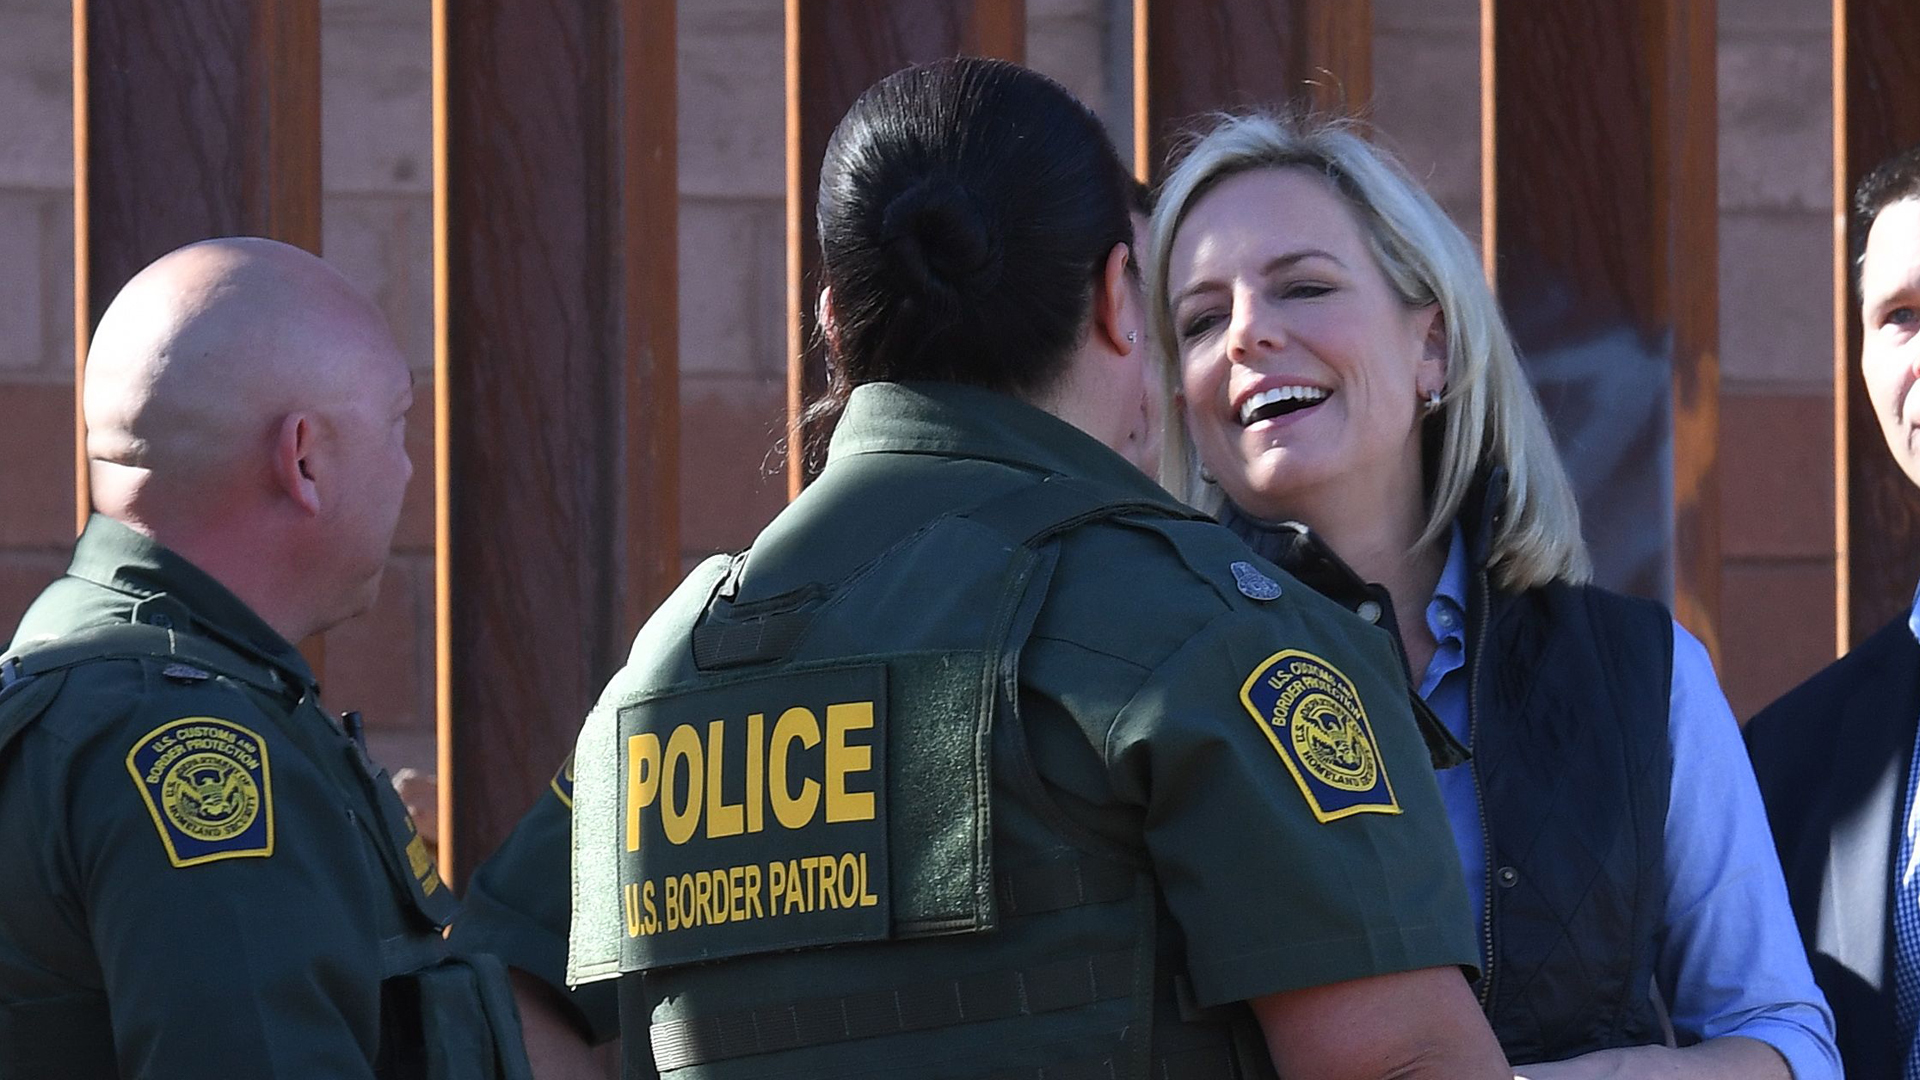 U.S. Department of Homeland Security Secretary Kirstjen M. Nielsen smiles alongside Border Patrol officer Gloria Chavez as they stand next to a plaque with President Trump's name on it at the first completed section of Trump's 30-foot border wall in the El Centro Sector, at the U.S. Mexico border in Calexico, Calif. on Oct. 26, 2018. (Credit: Mark RALSTON / AFP/ Getty Images)